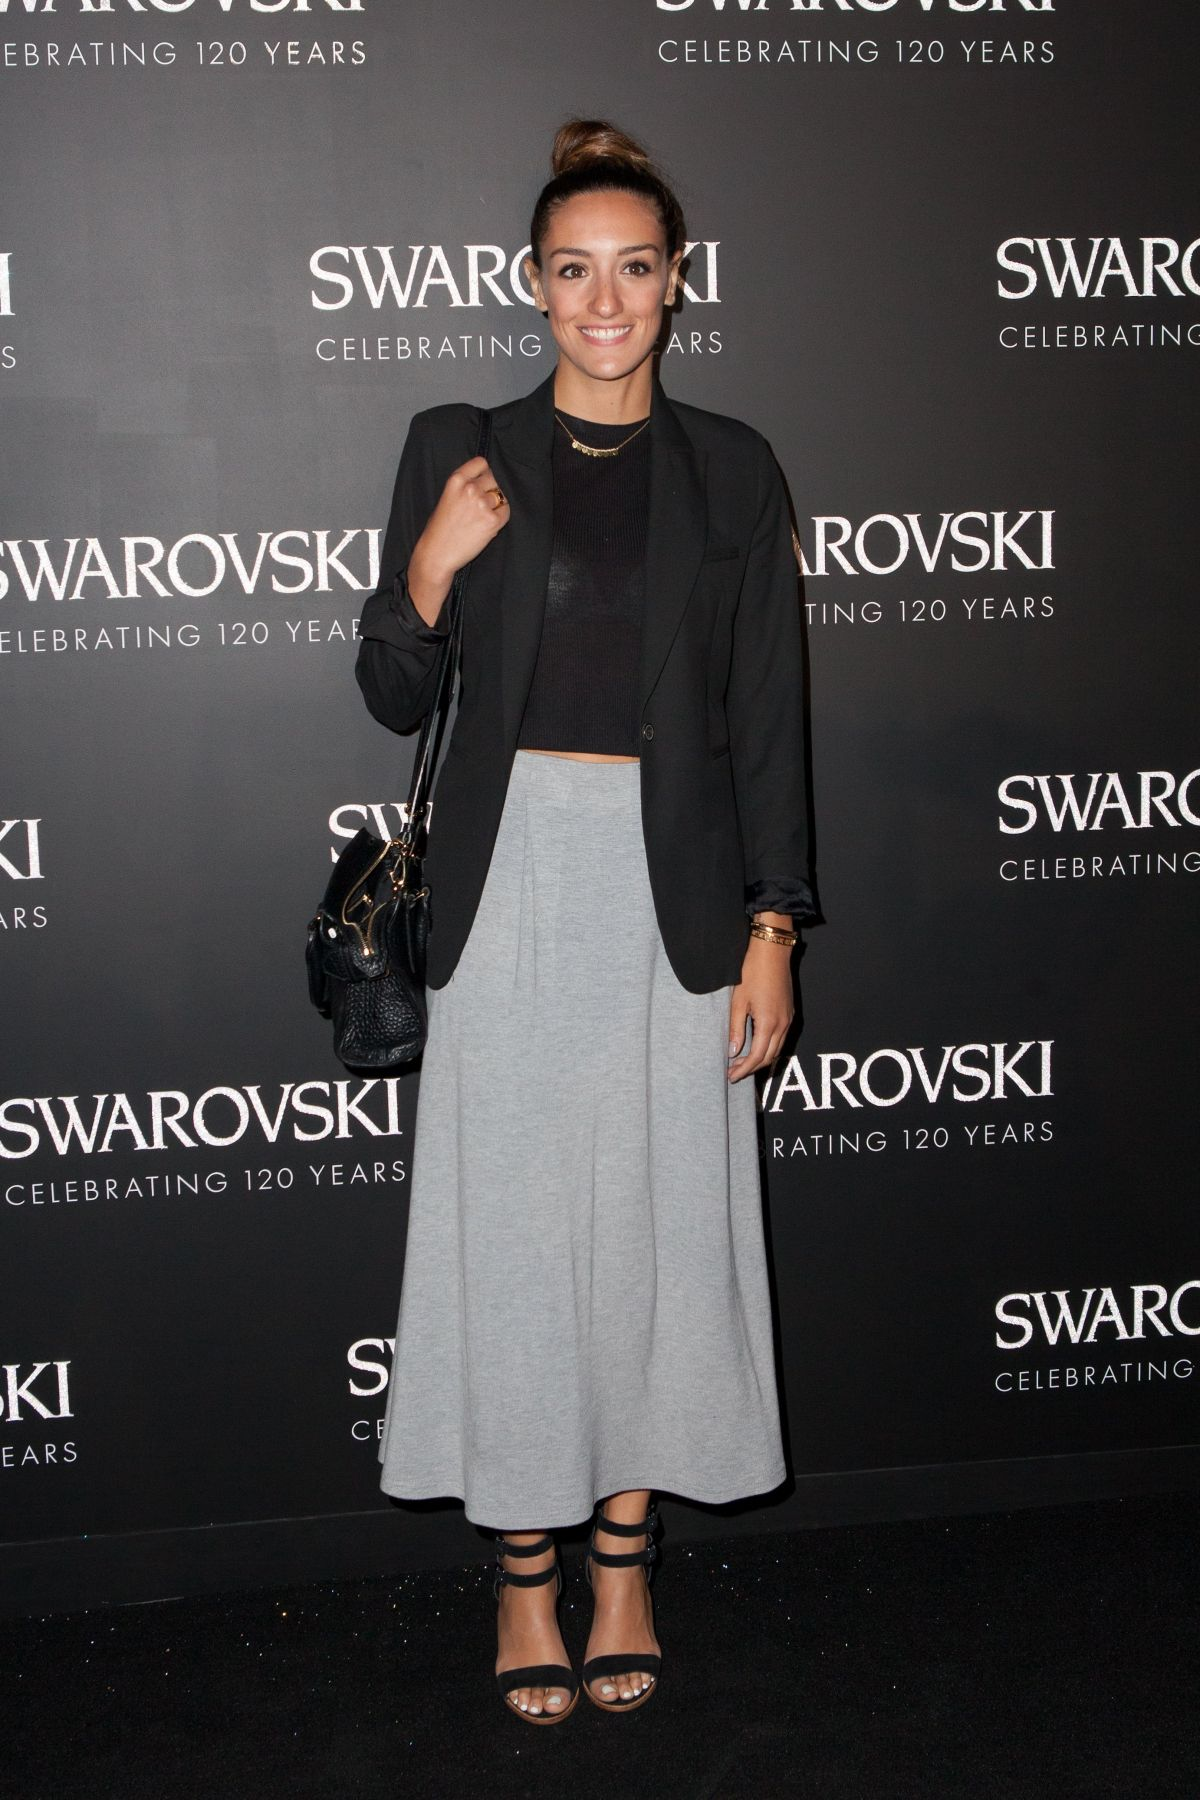 KENZA ZOUITEN at Swarovski 120 x Rizzoli Exhibition and Cocktail in Paris 09/30/2015